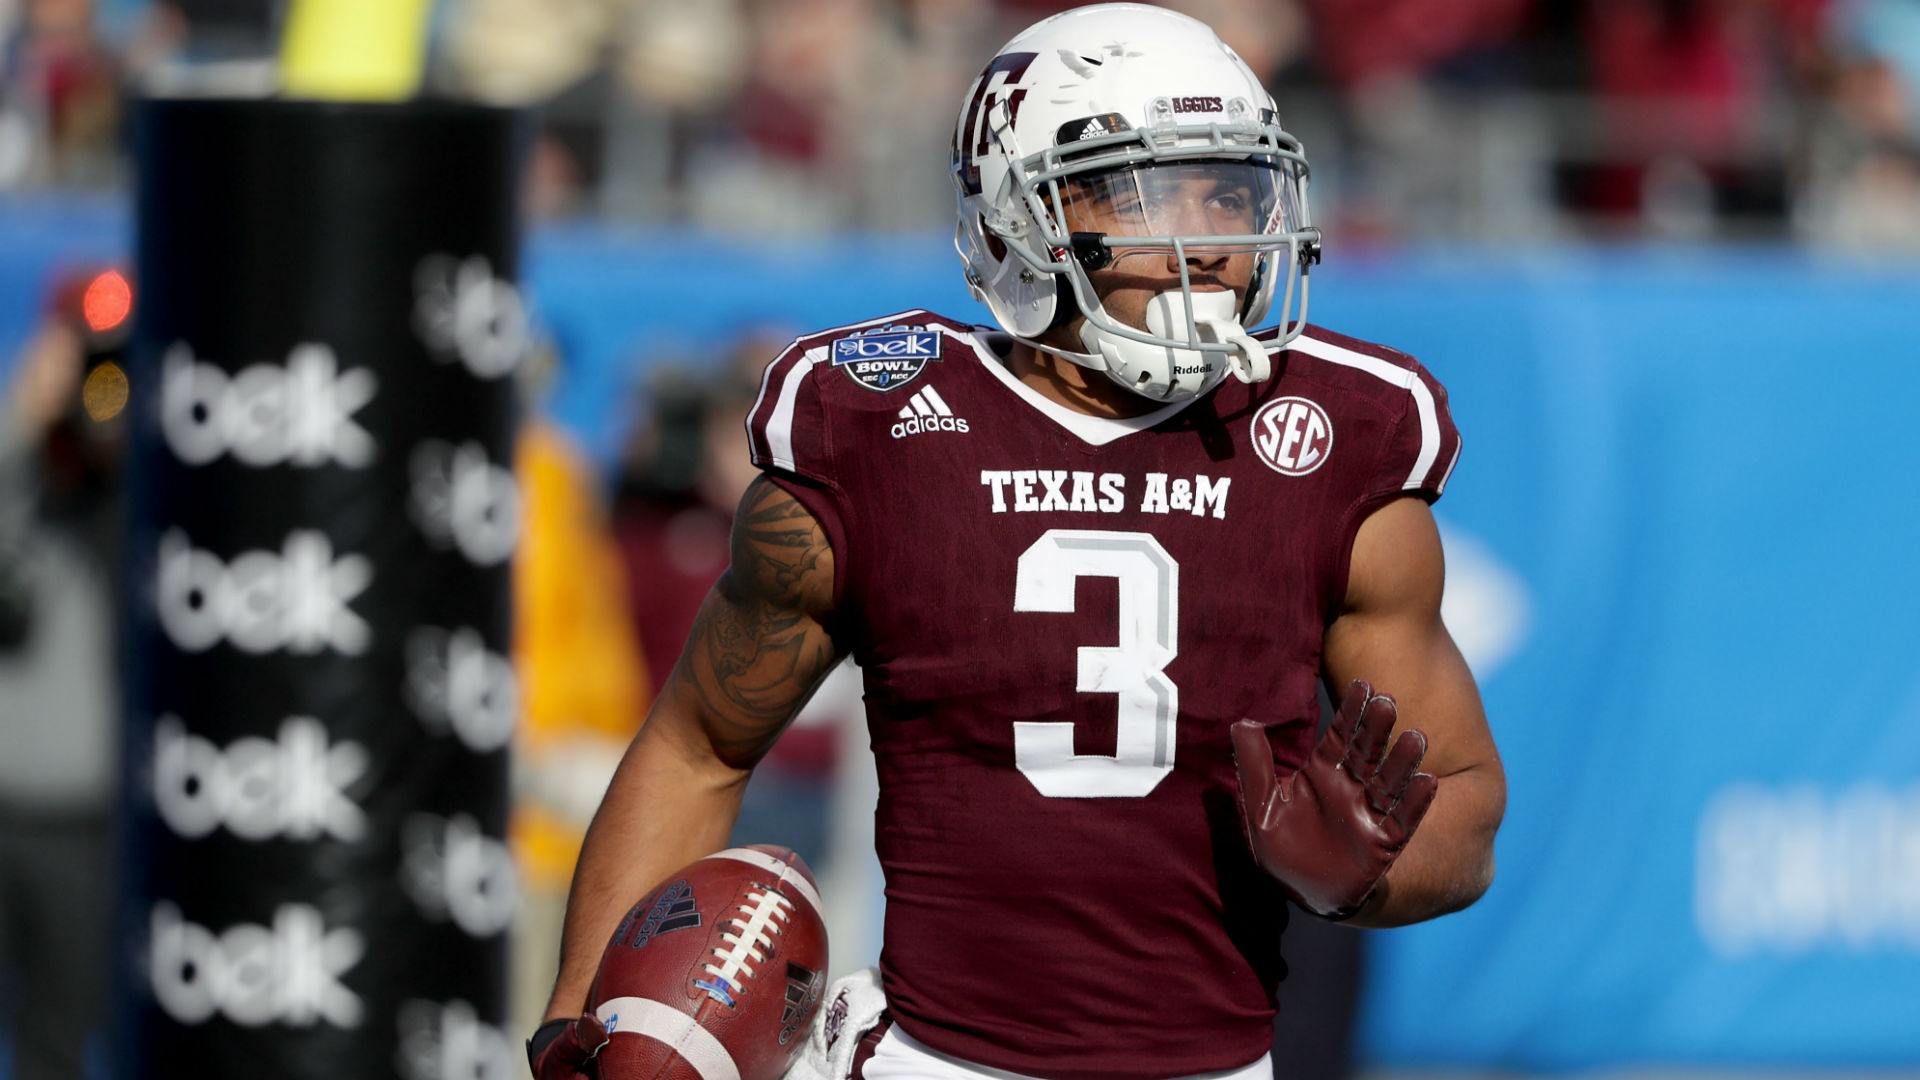 Christian Kirk arrested in February  for disorderly conduct, damaging property